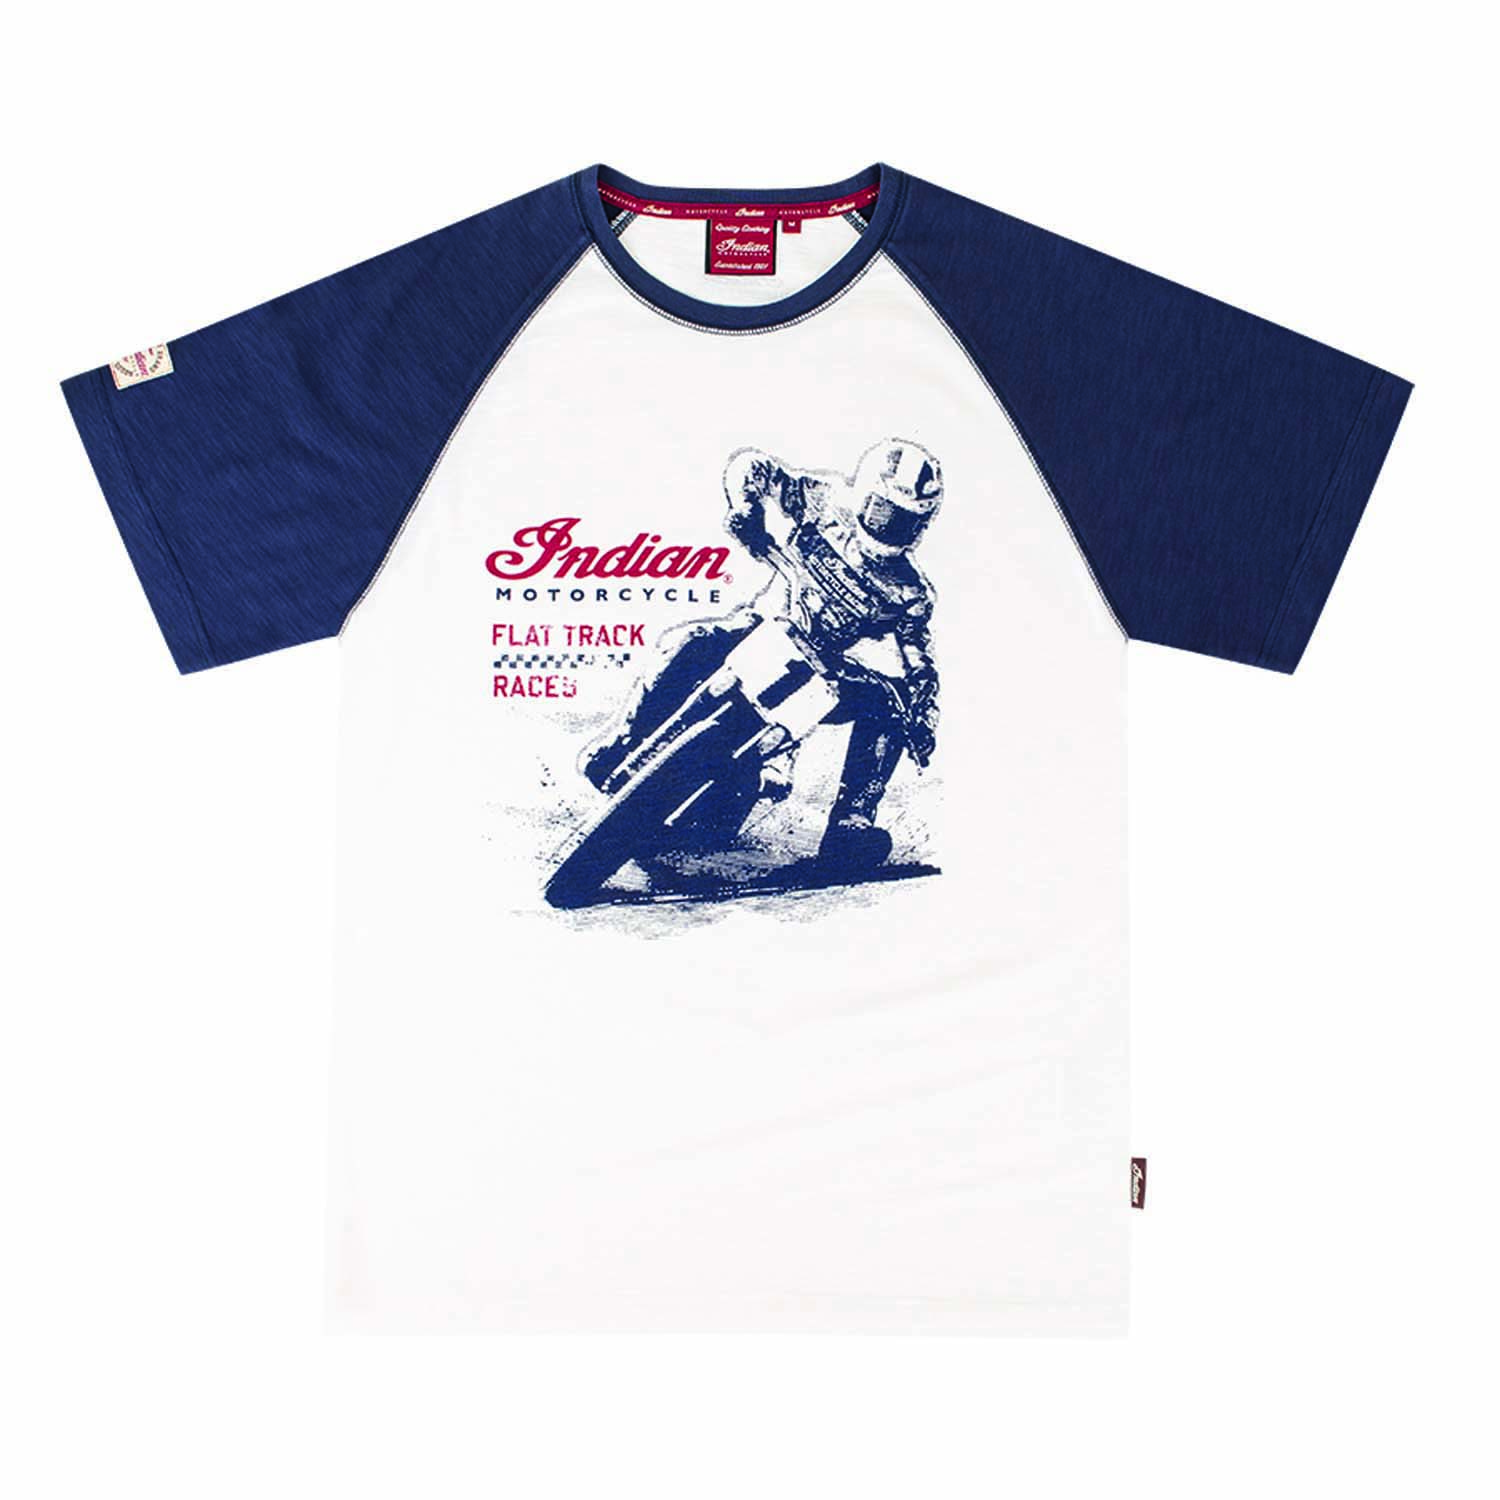 Indian Motorcycle Flat Track Racer Tee